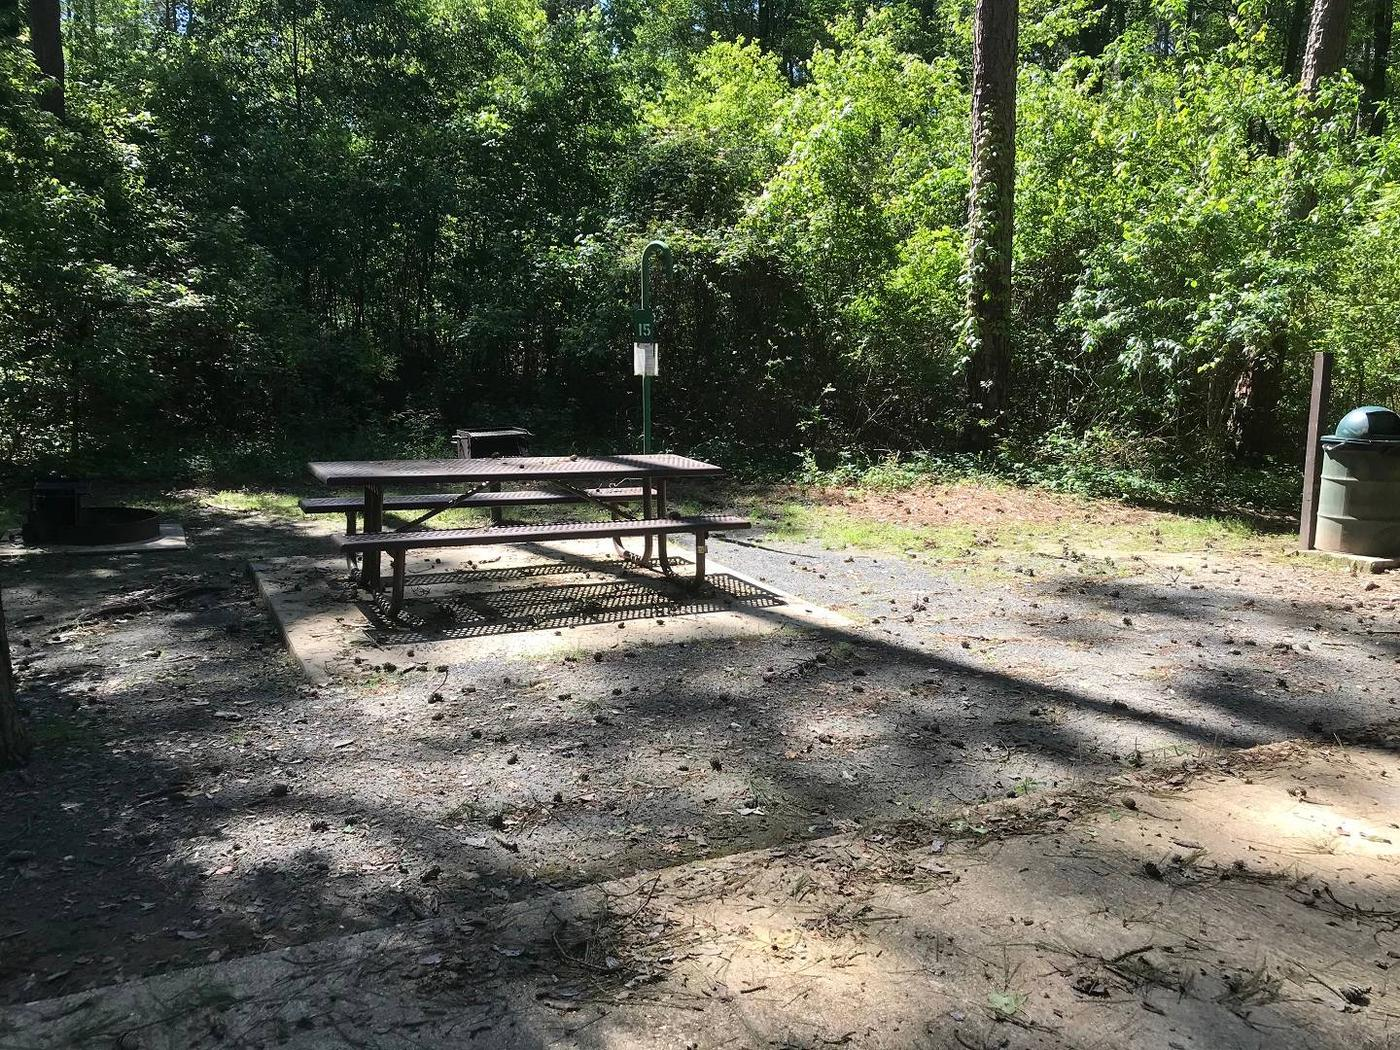 Shaded Class A Campsite 15Shaded Class A Campsite #15. RV pad, water, and 20/30/50 AMP electric hook-ups as well as basic campsite amenities including a picnic table, lantern post, fire ring, trash can and grill.